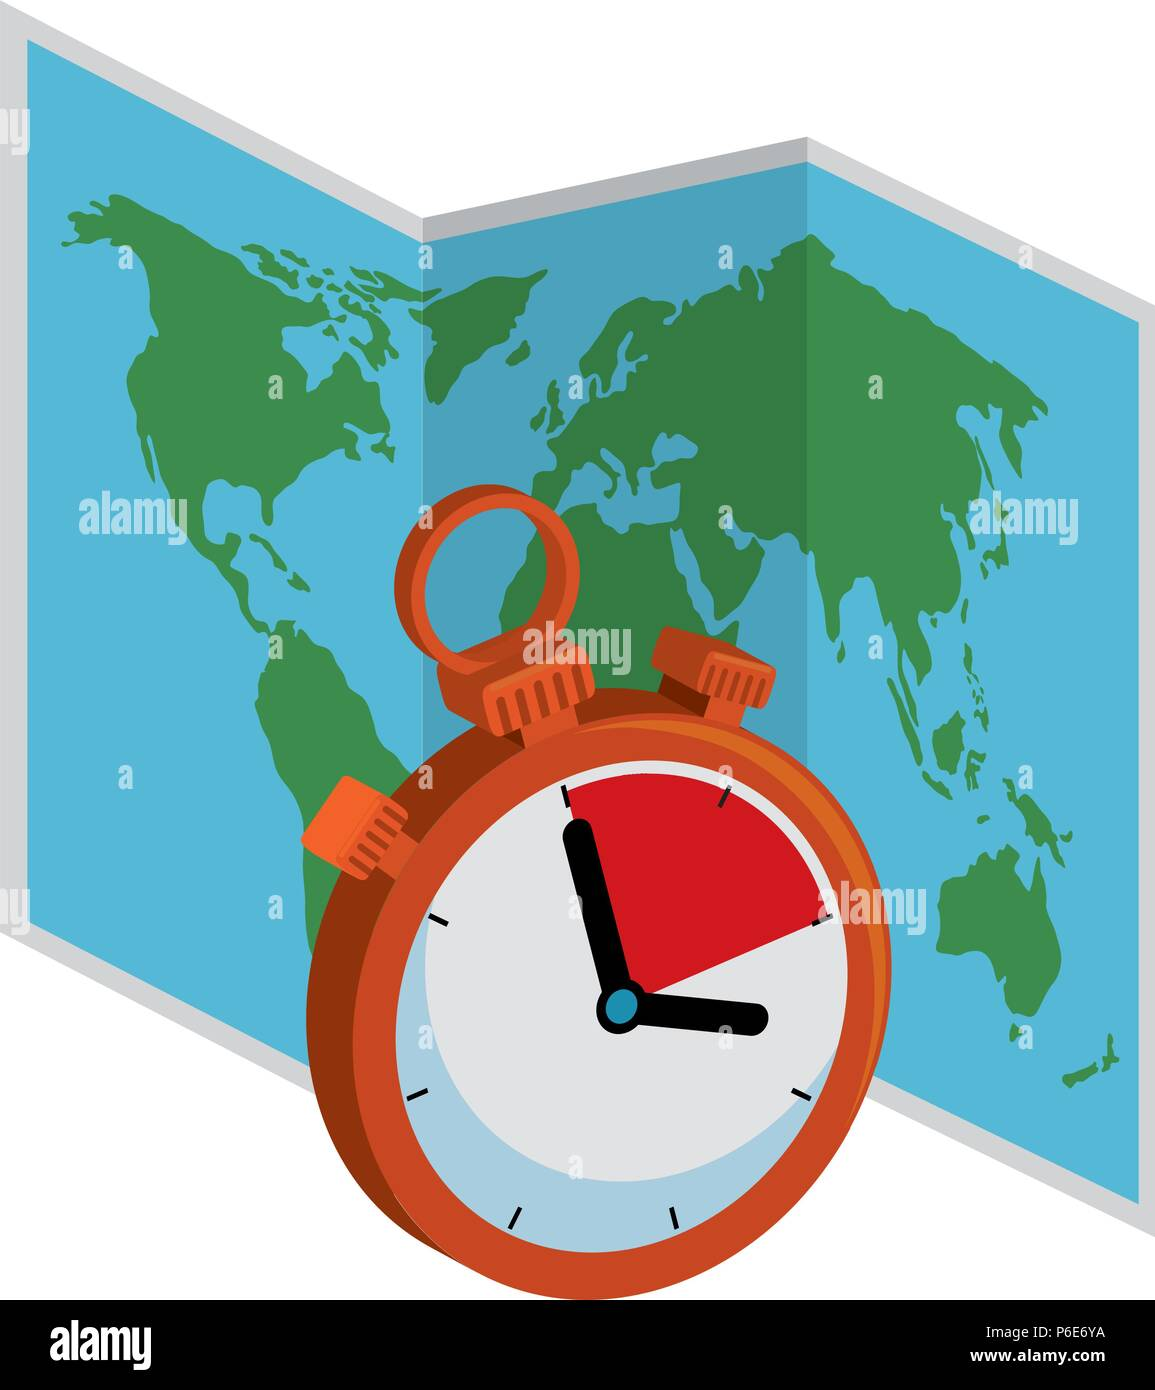 Accurate World Map Stock Photos & Accurate World Map Stock Images ...